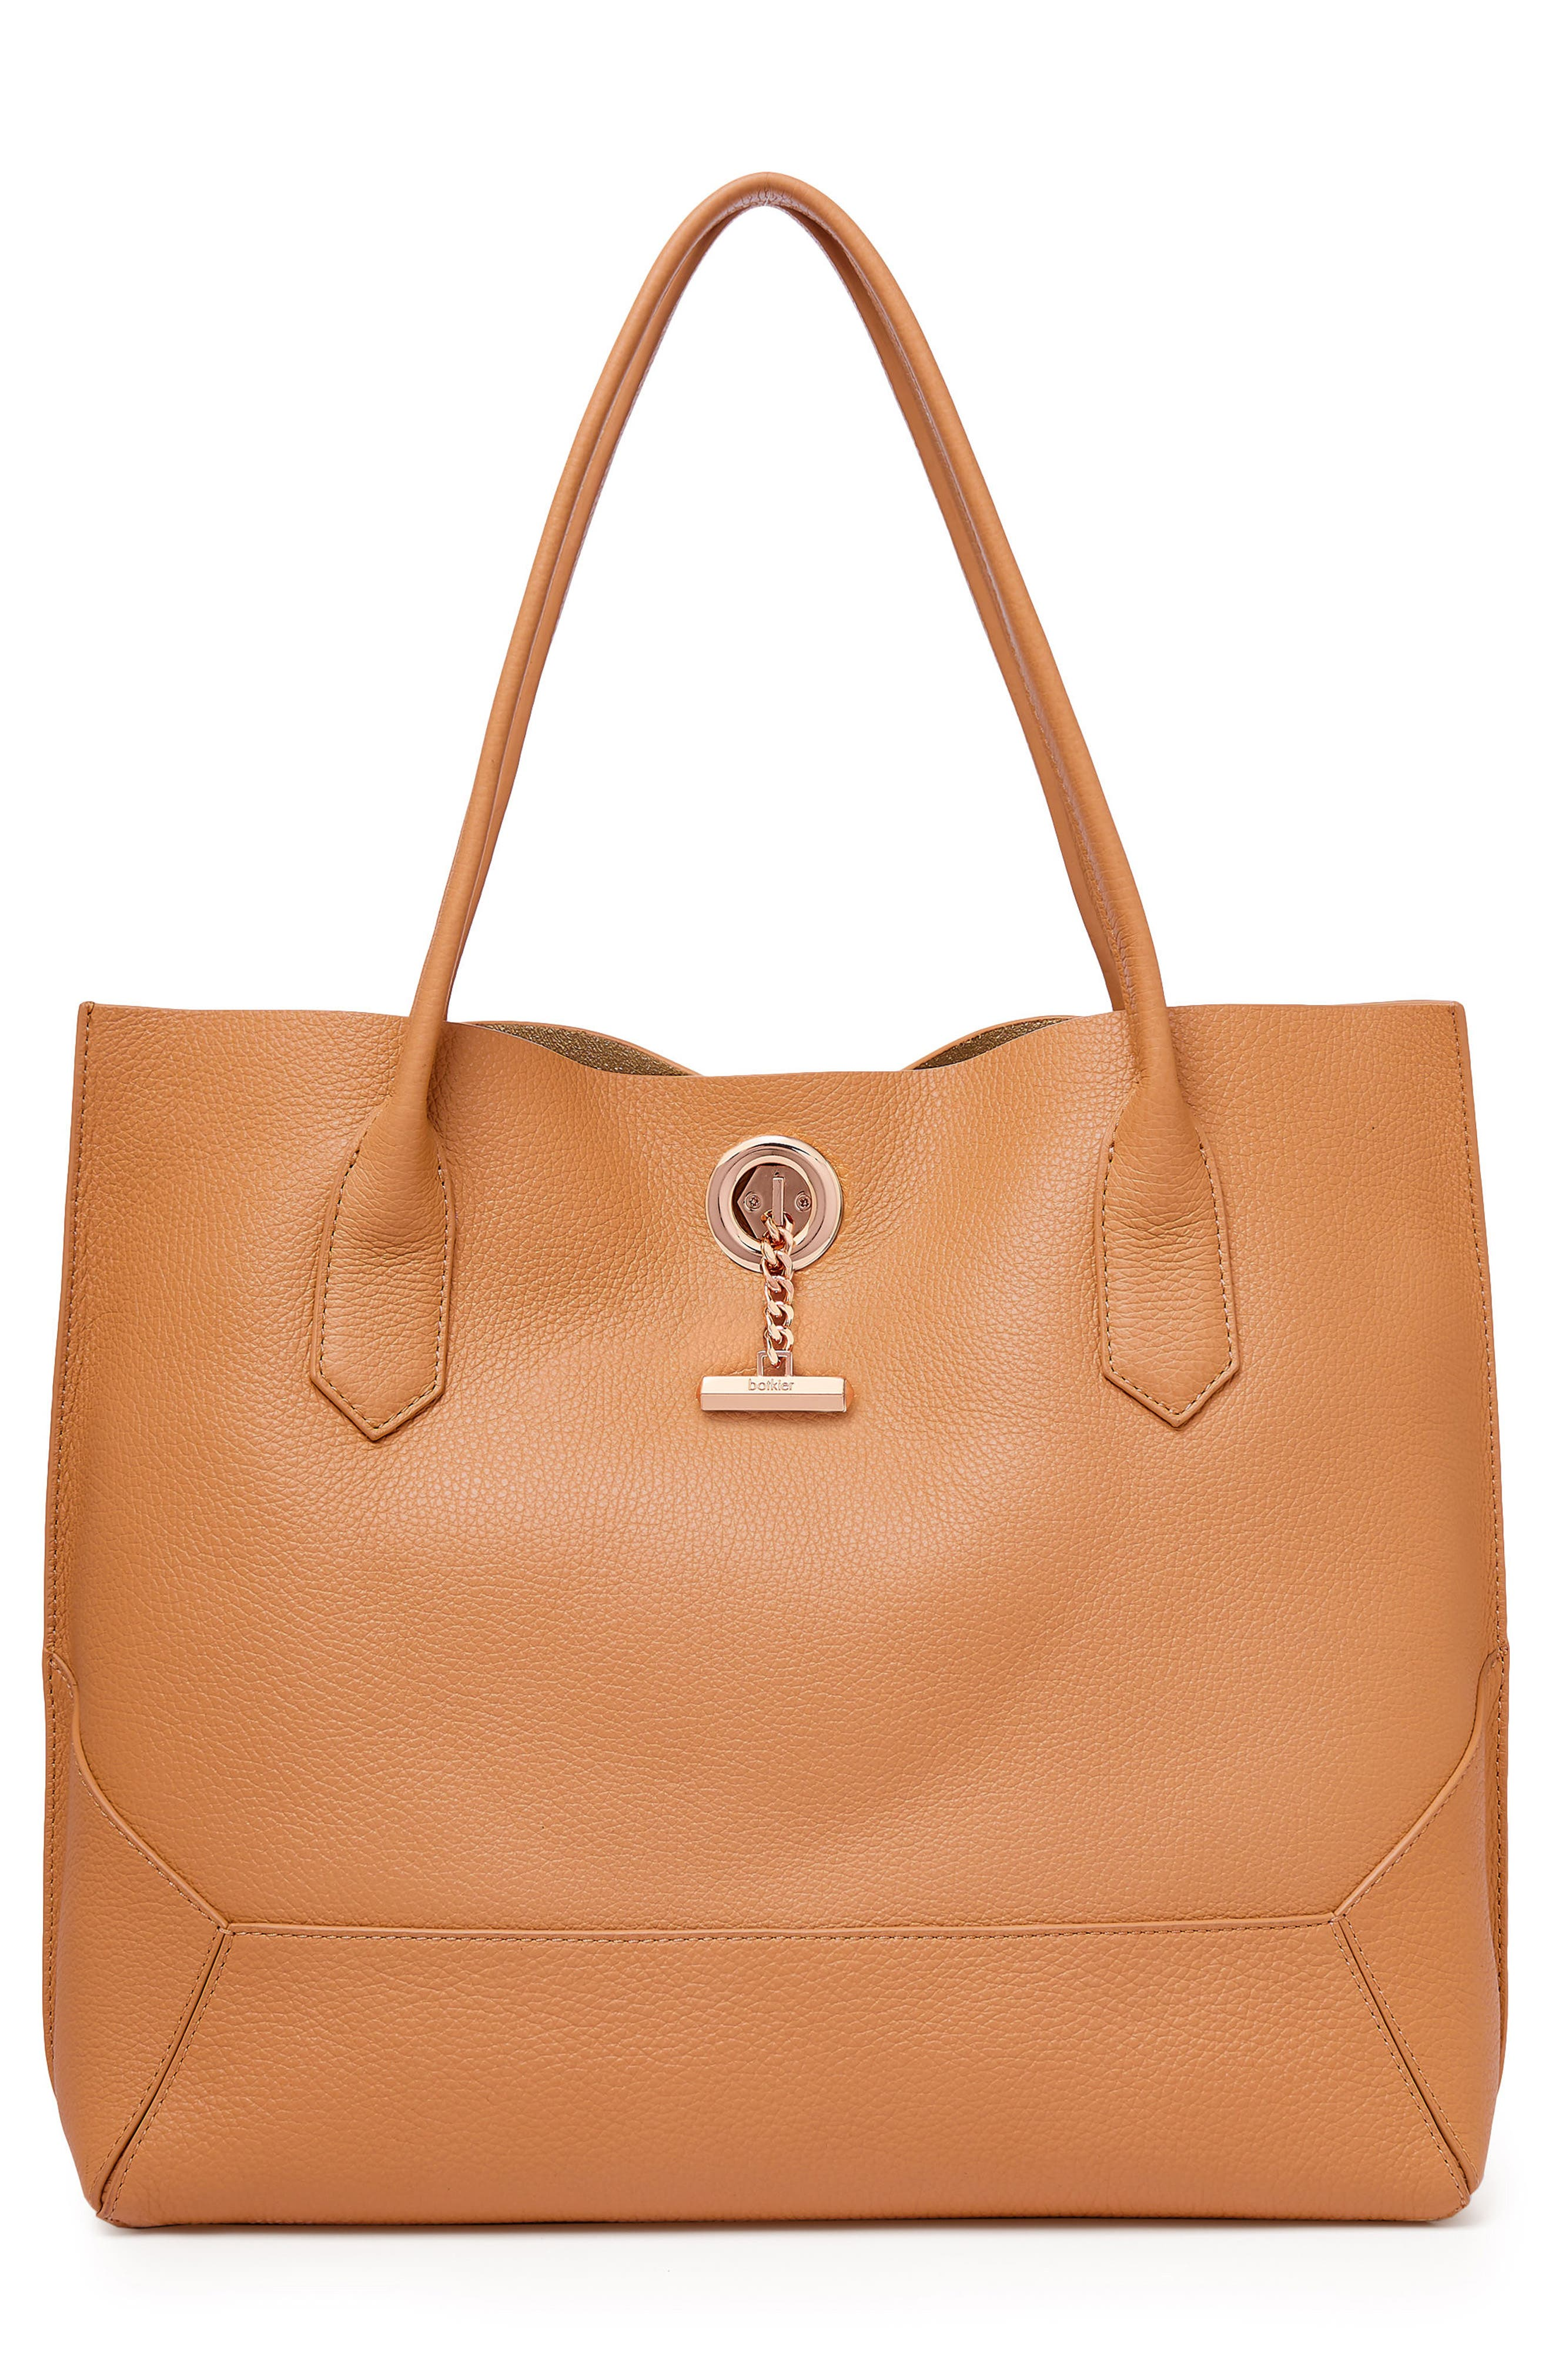 Botkier Waverly Leather Tote